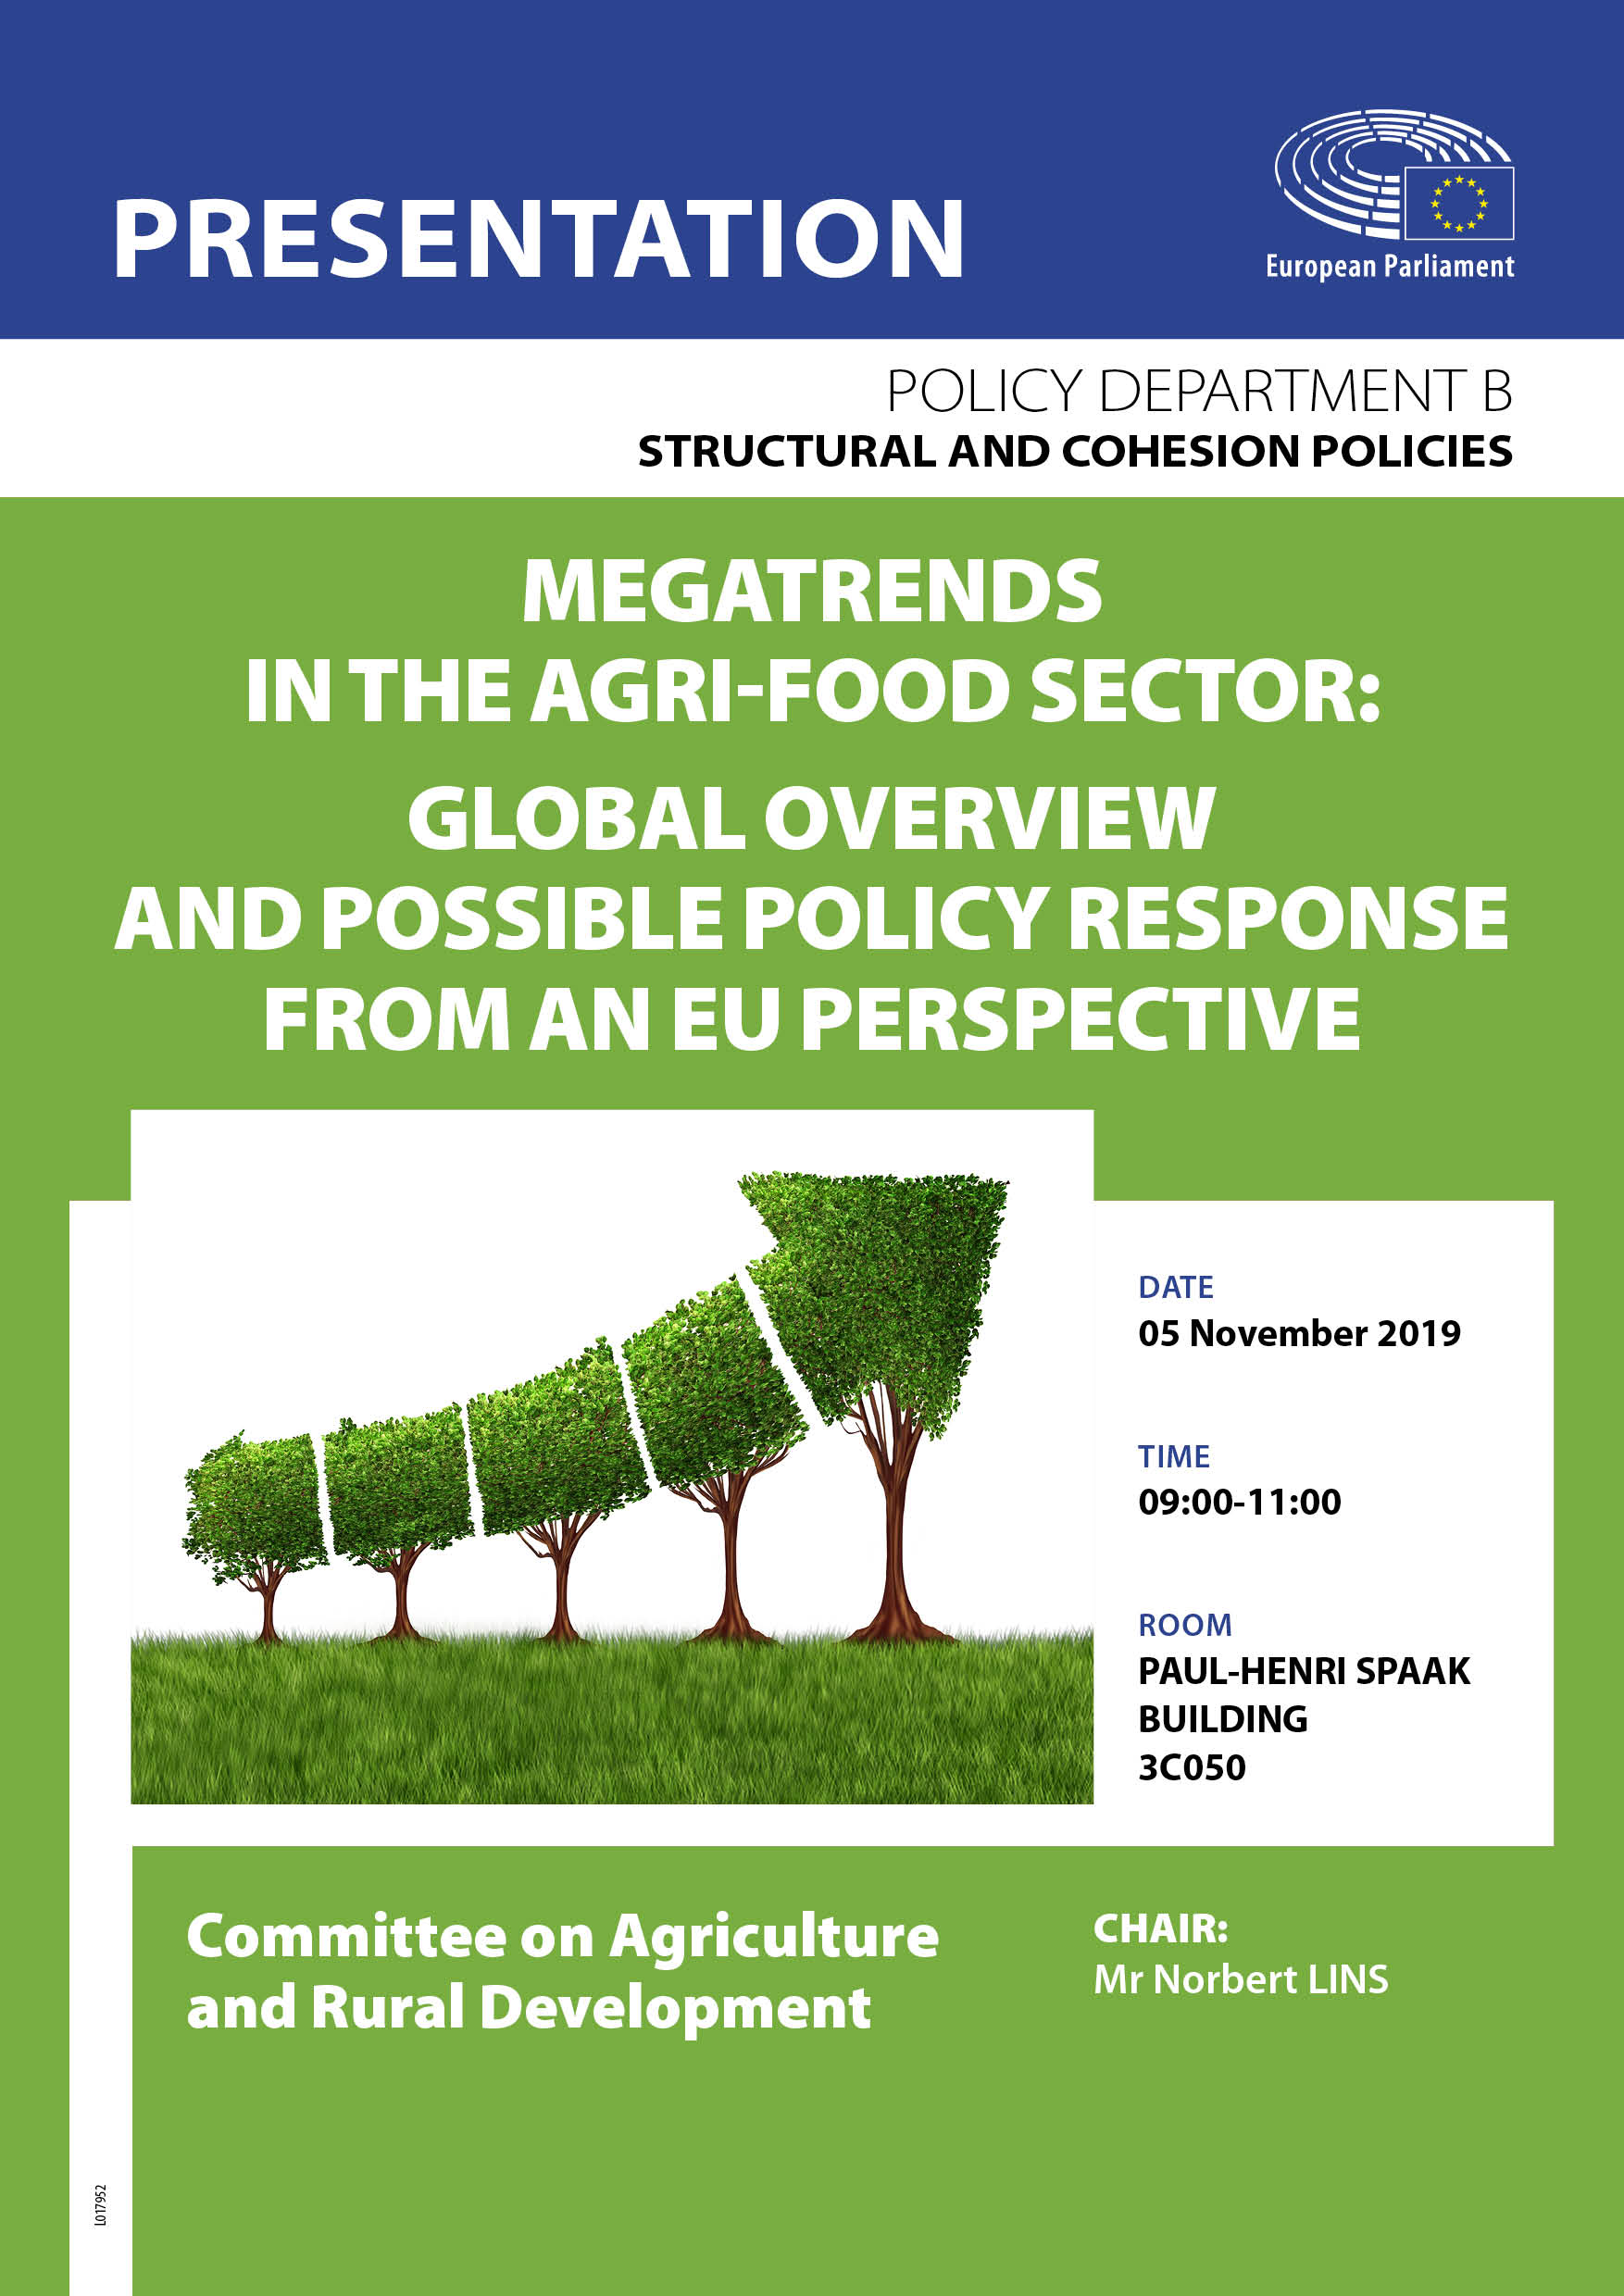 Megatrends in the agri-food sector: global overview and possible policy response from an EU perspective